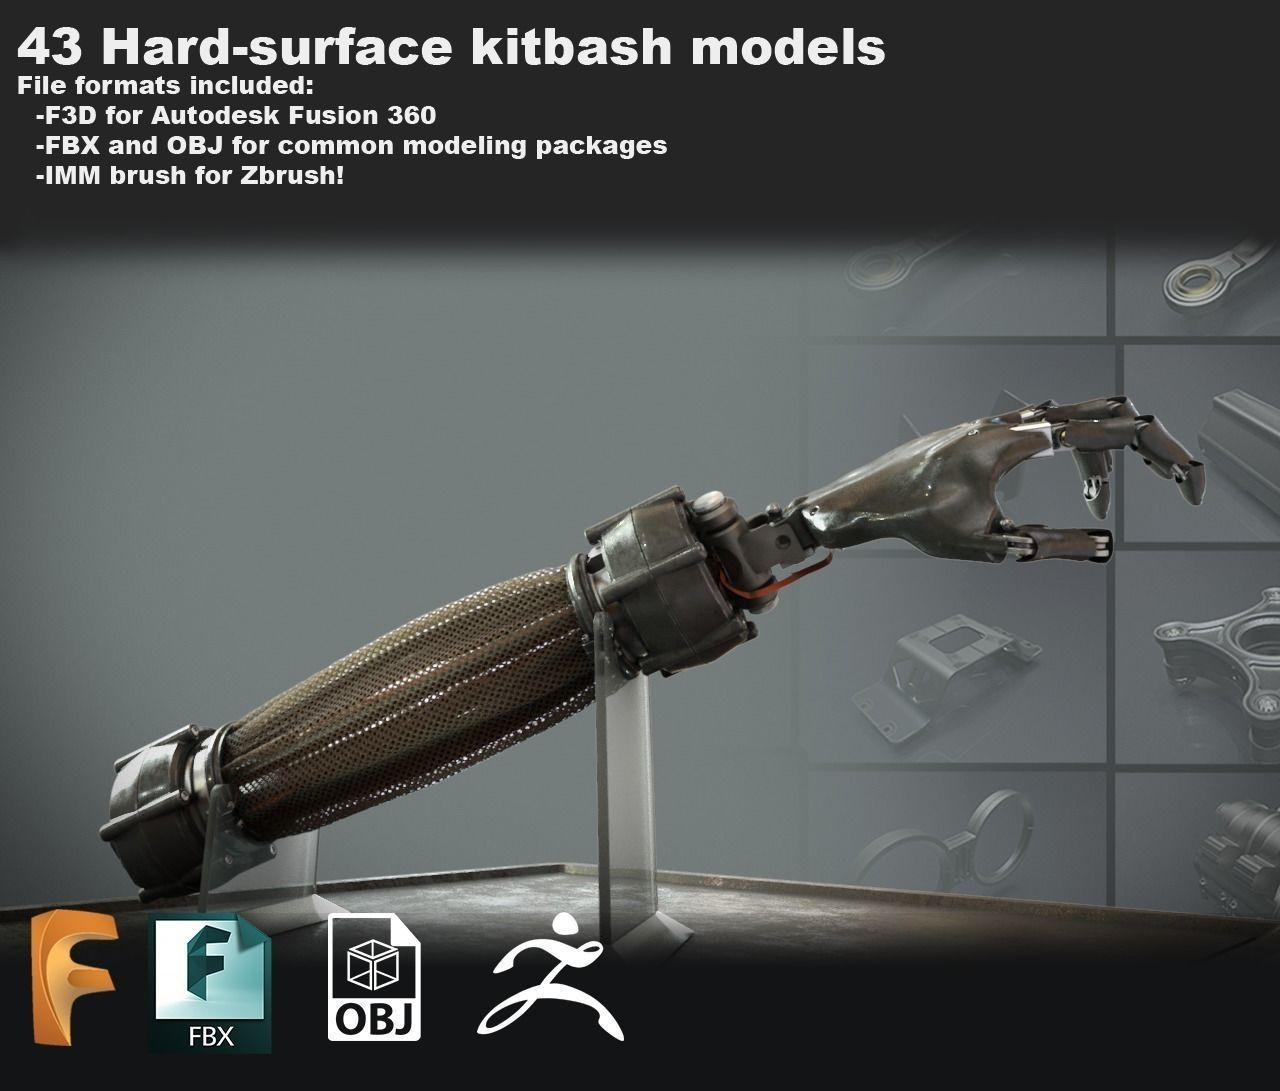 3D Free Sci-fi kitbash set for Fusion 360 - Zbrush - FBX 1